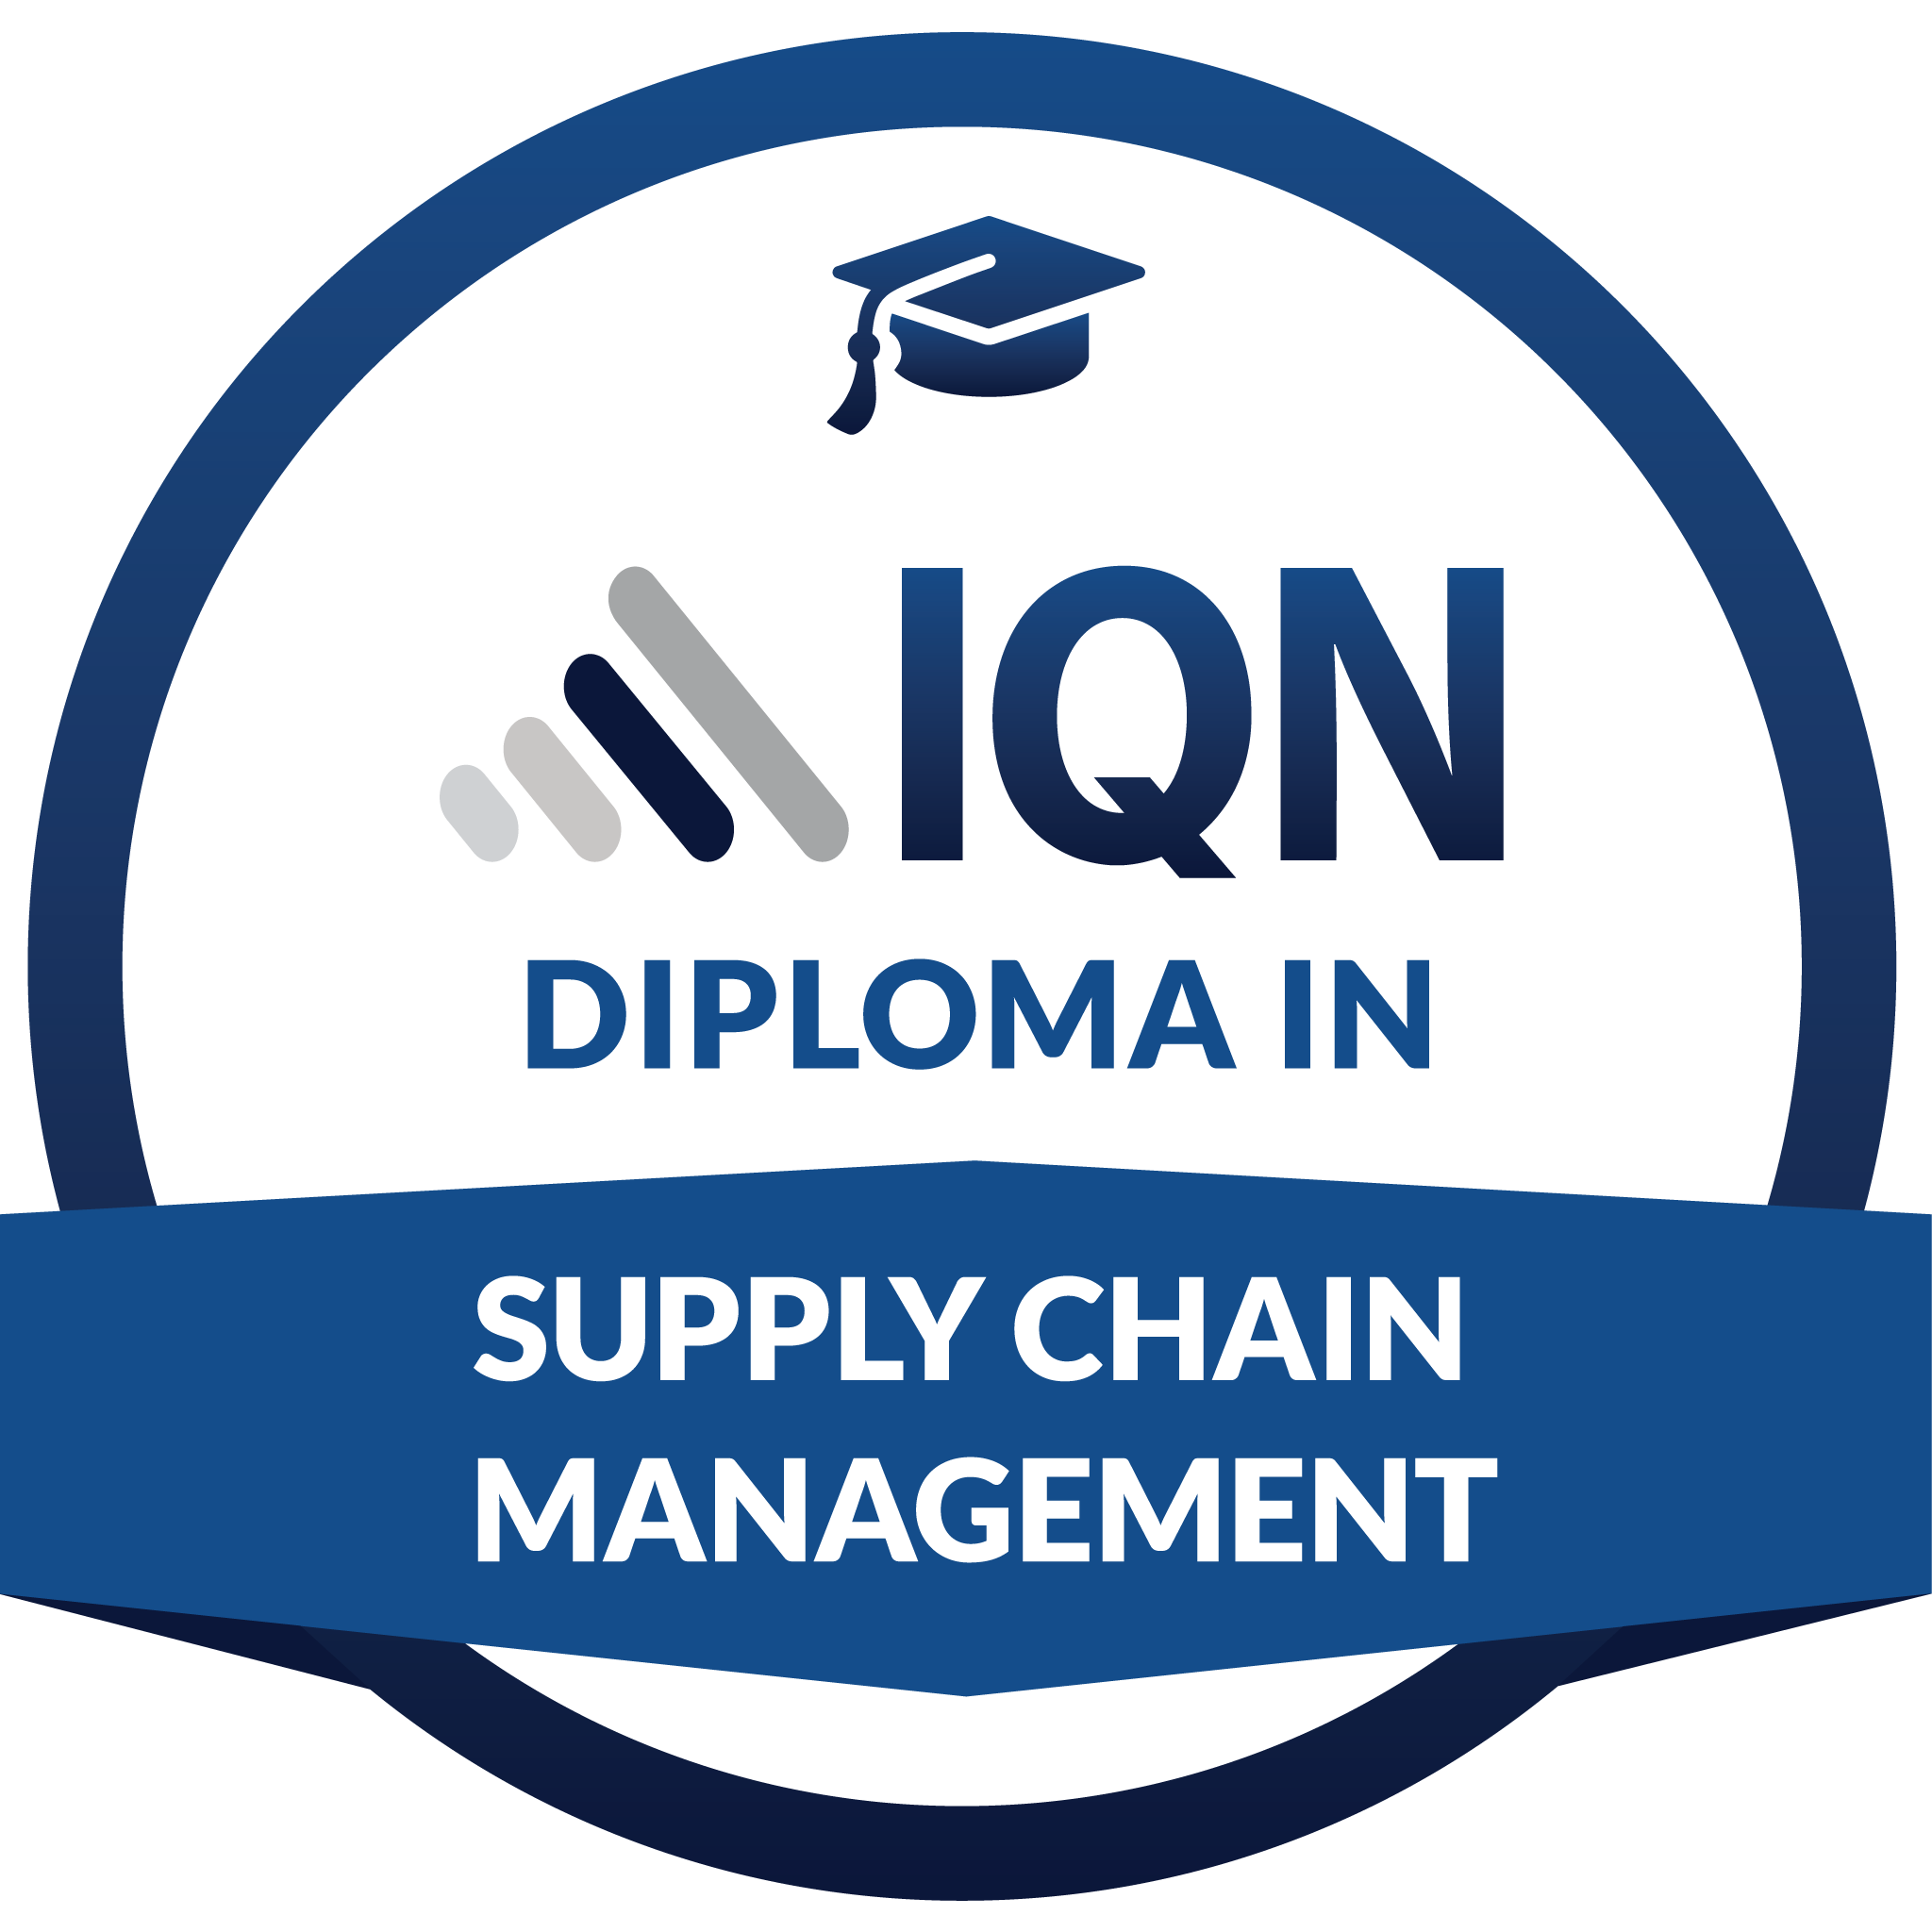 Diploma in Supply Chain Management